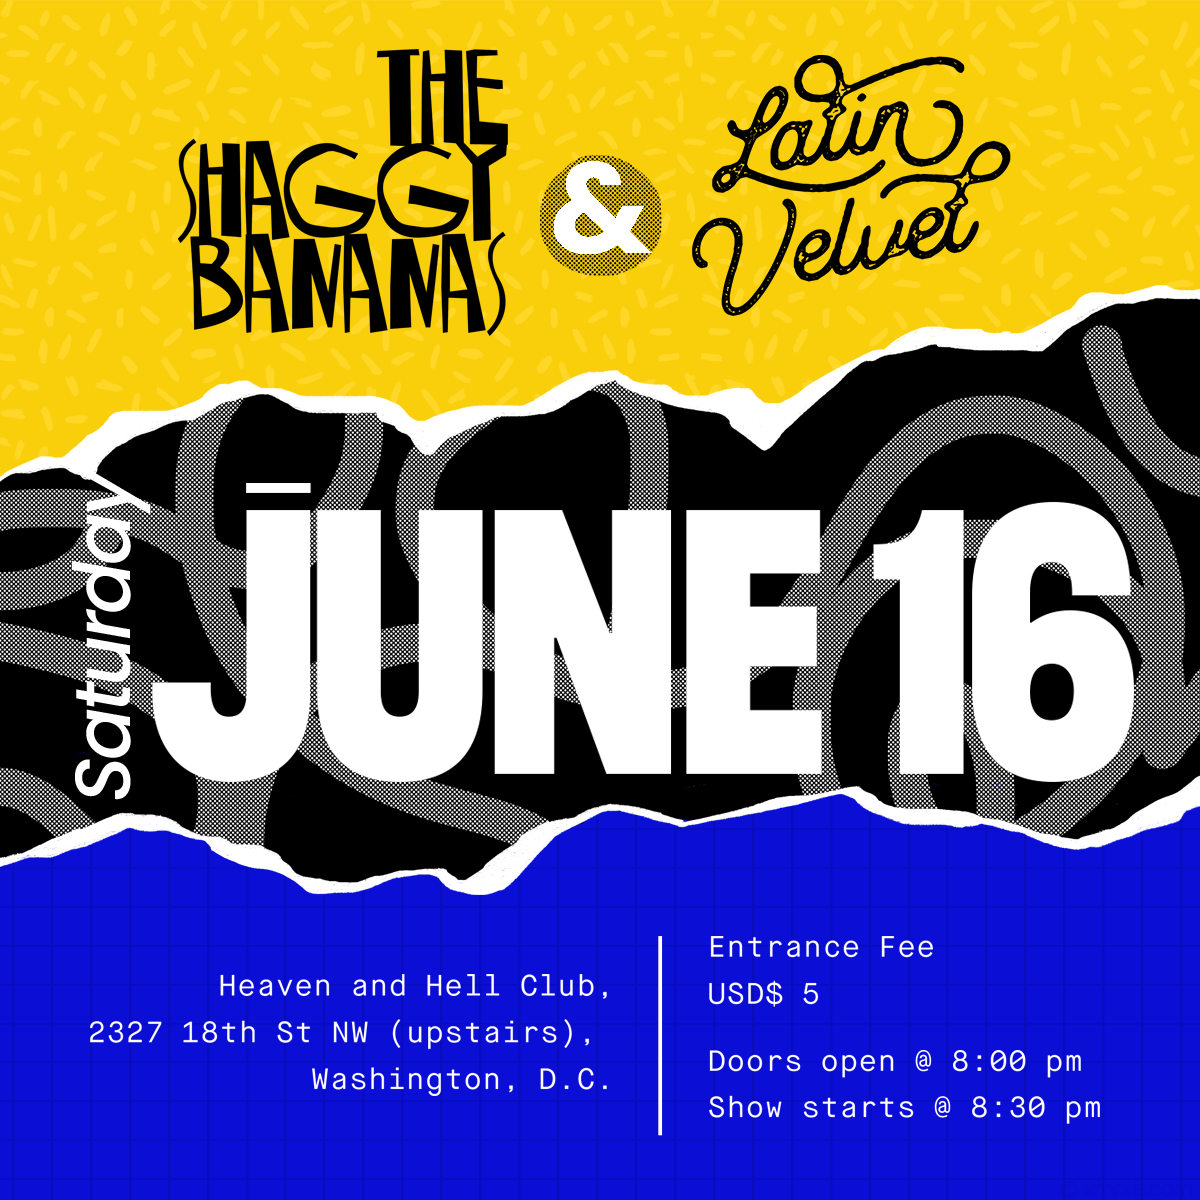 Gig flyer for my friends in DC, The Shaggy Bananas